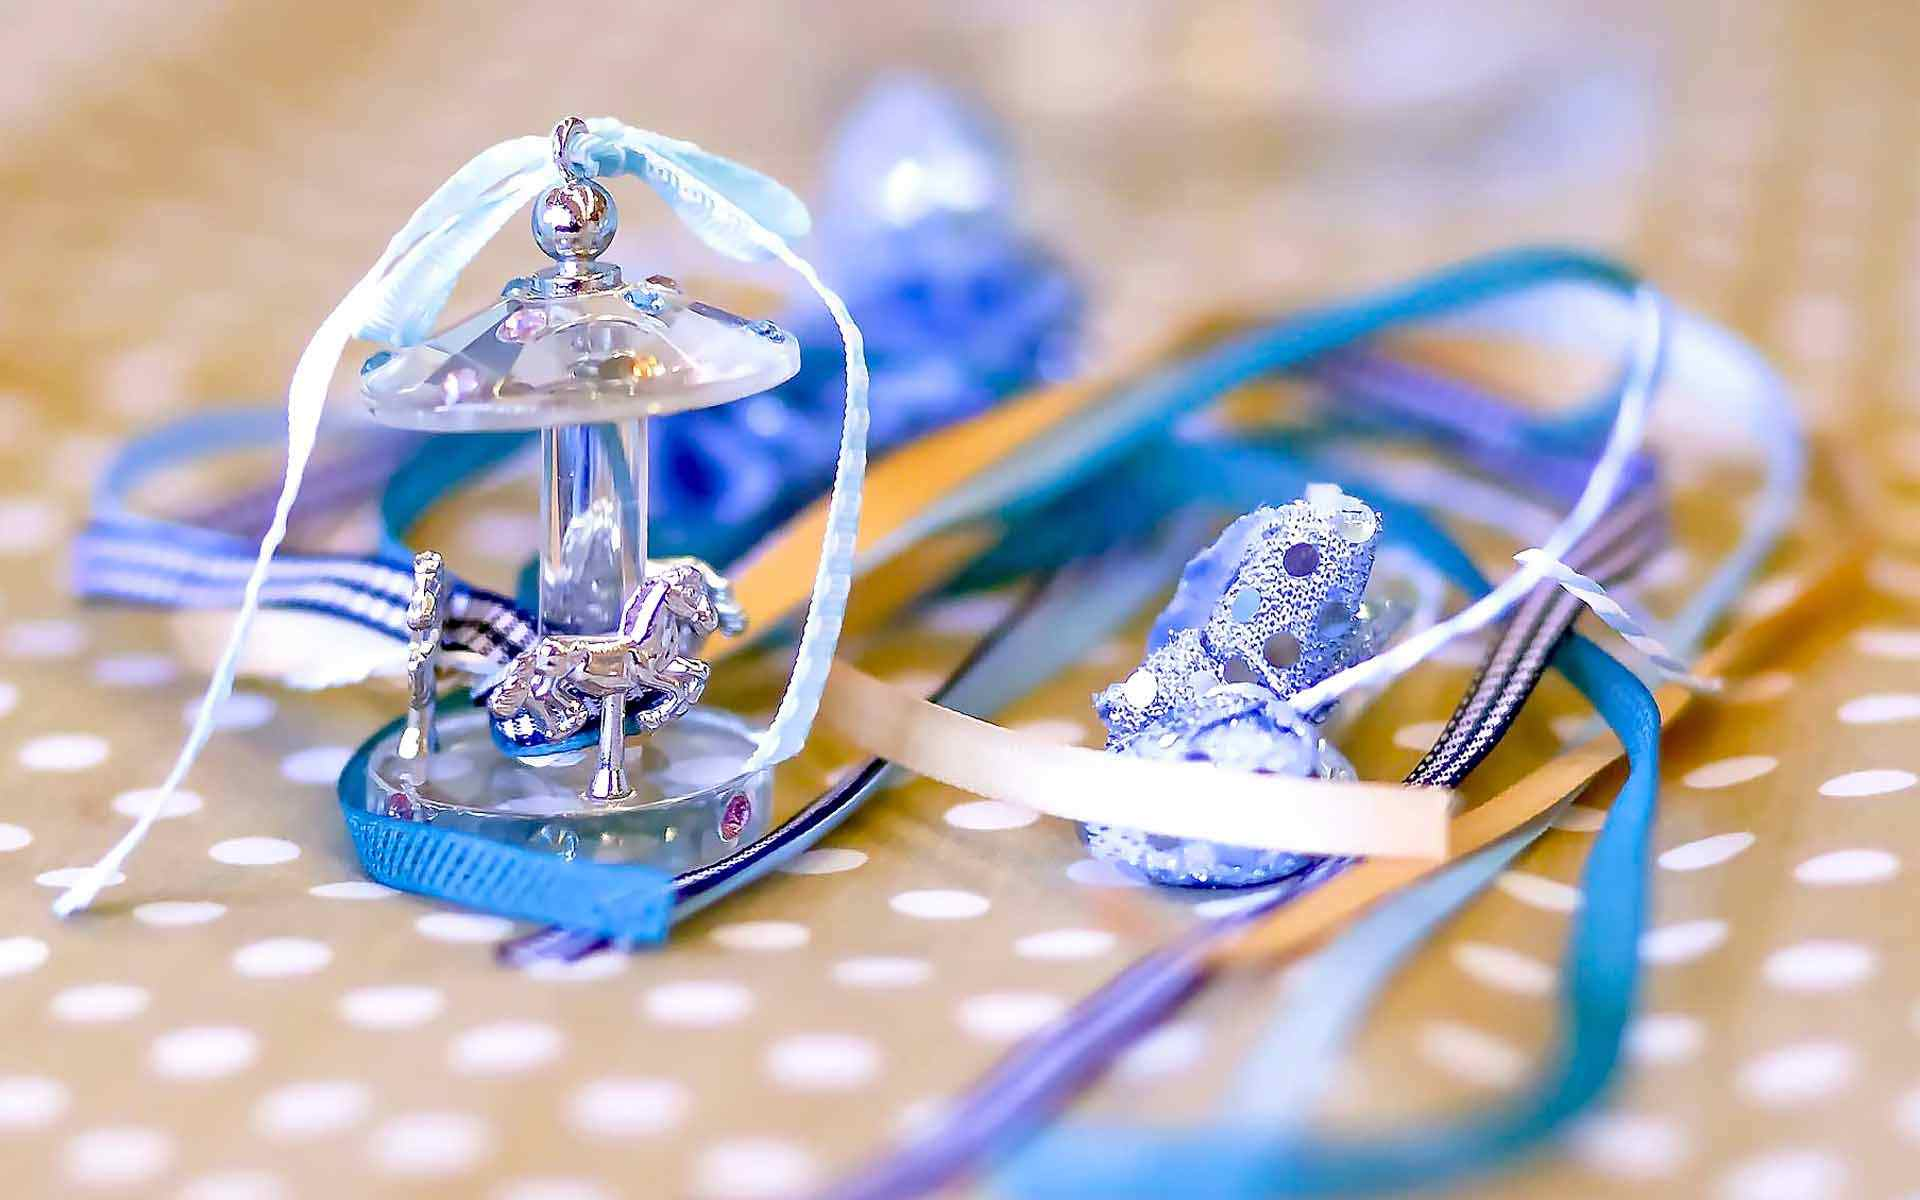 Elegant-Crystal-Carousel-Favor-by-Diamond-Events-christening